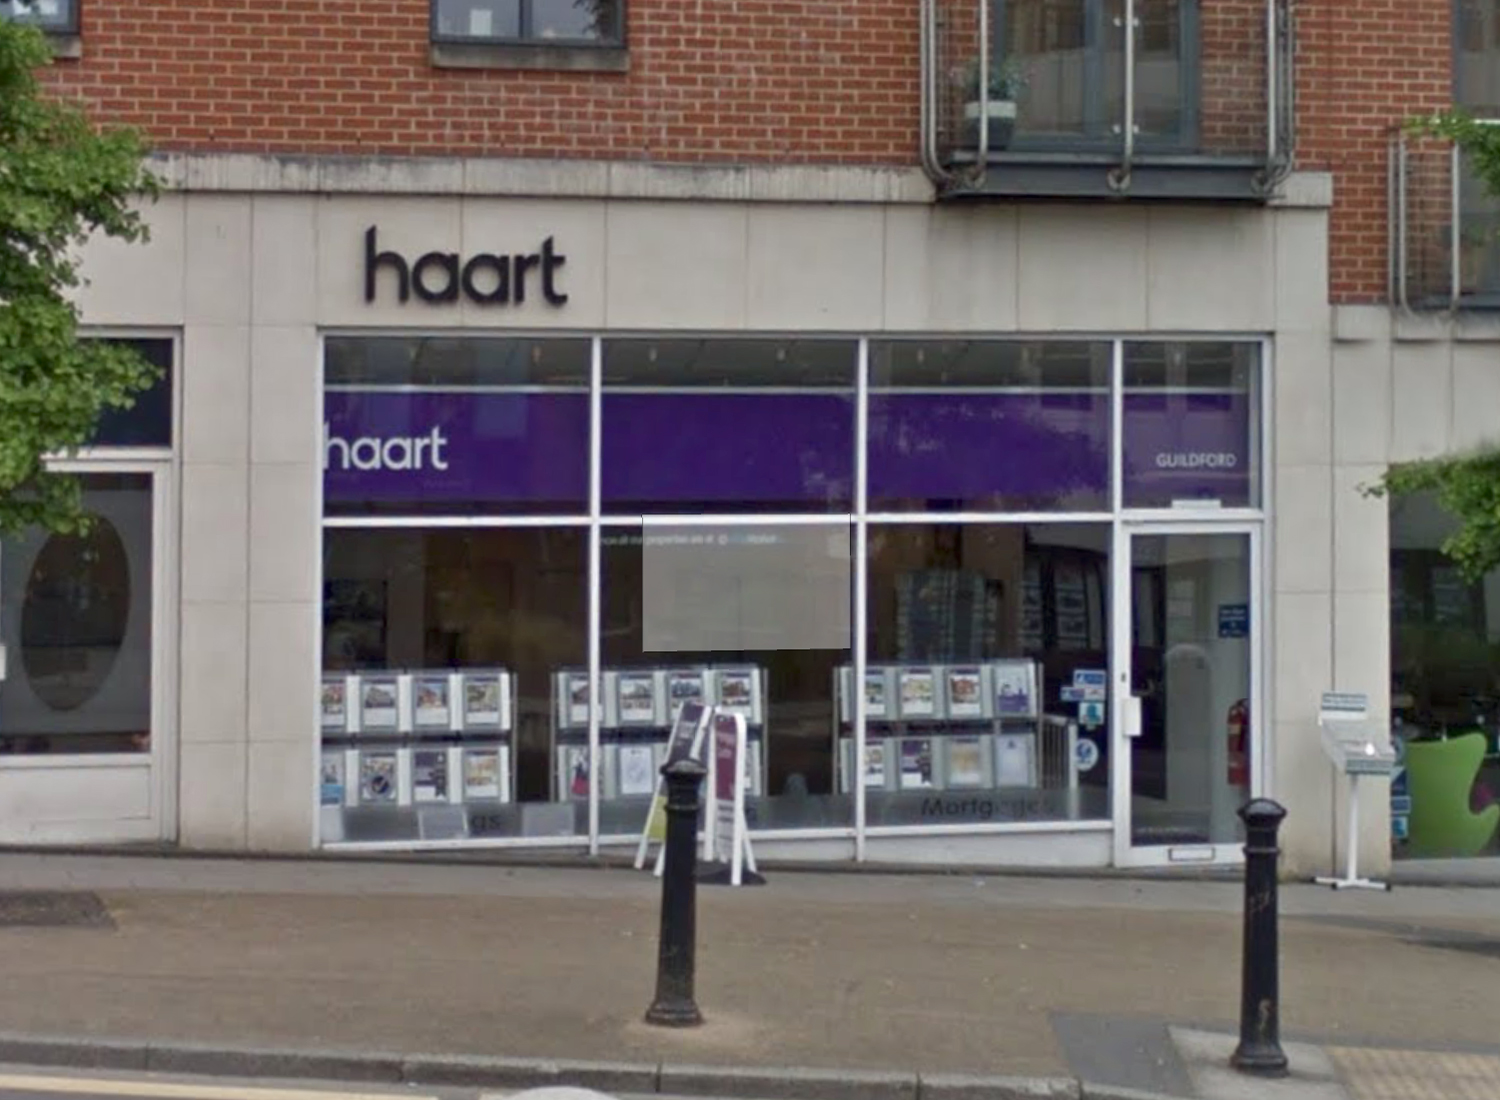 haart letting agents Guildford - Guildford, Surrey GU1 3JQ - 01483 304623 | ShowMeLocal.com